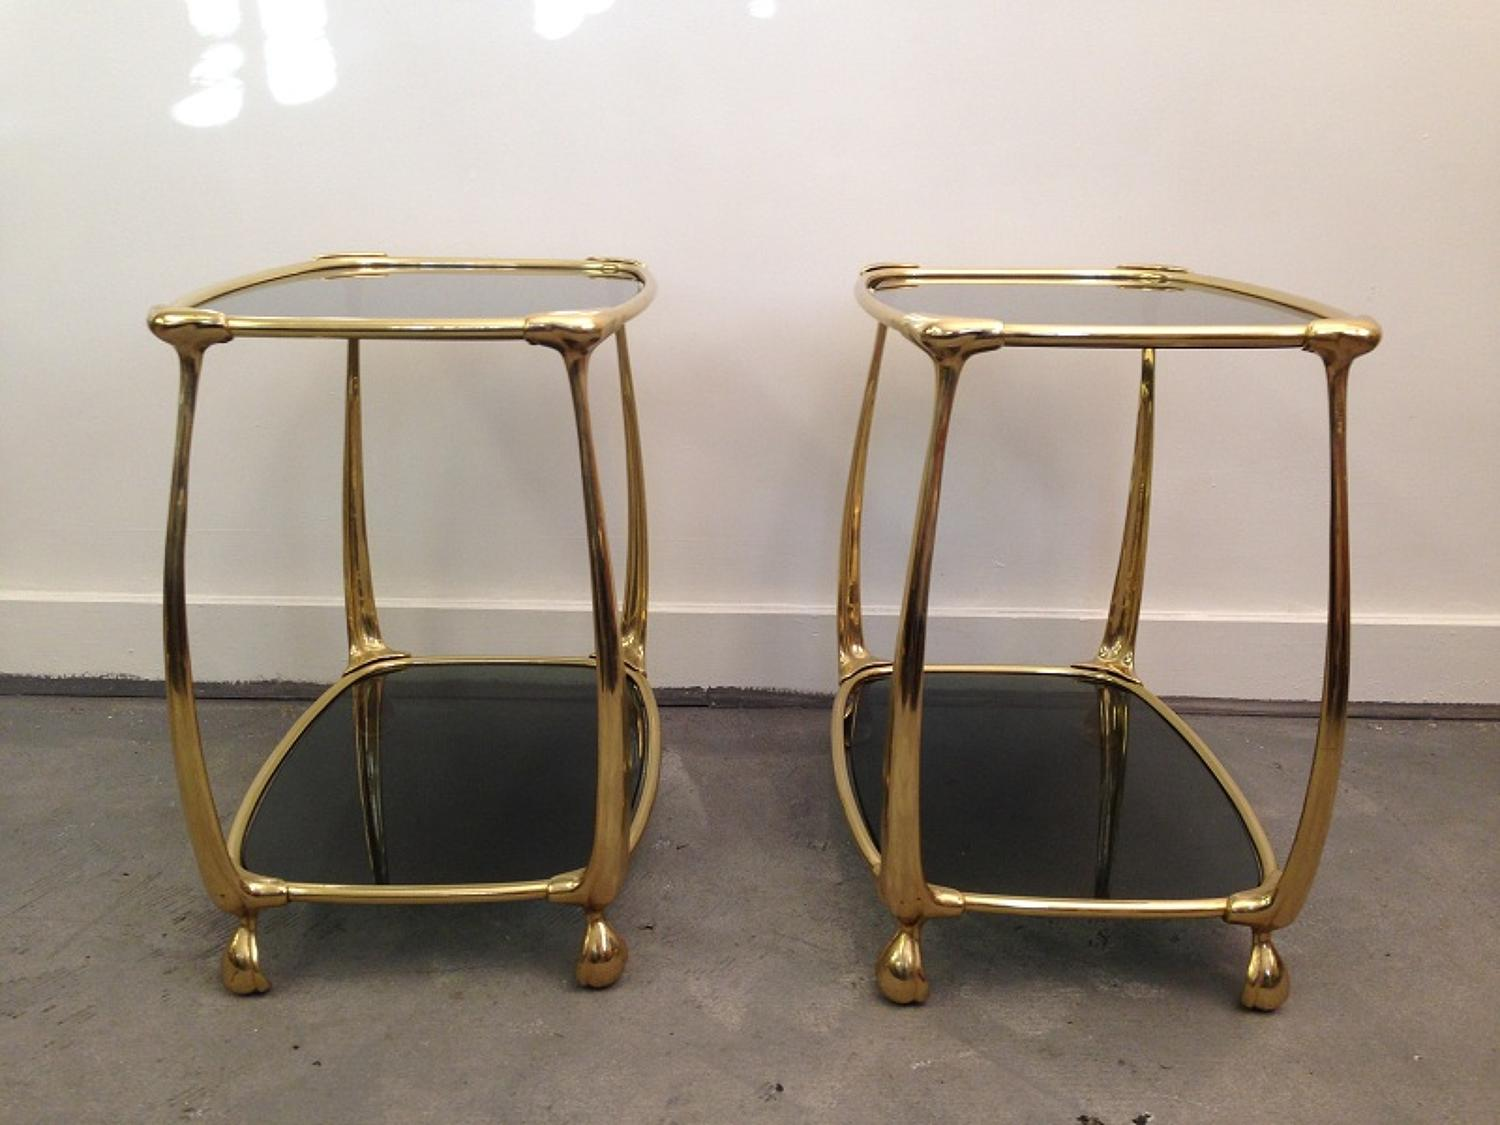 A pair of gilt metal and glass side tables